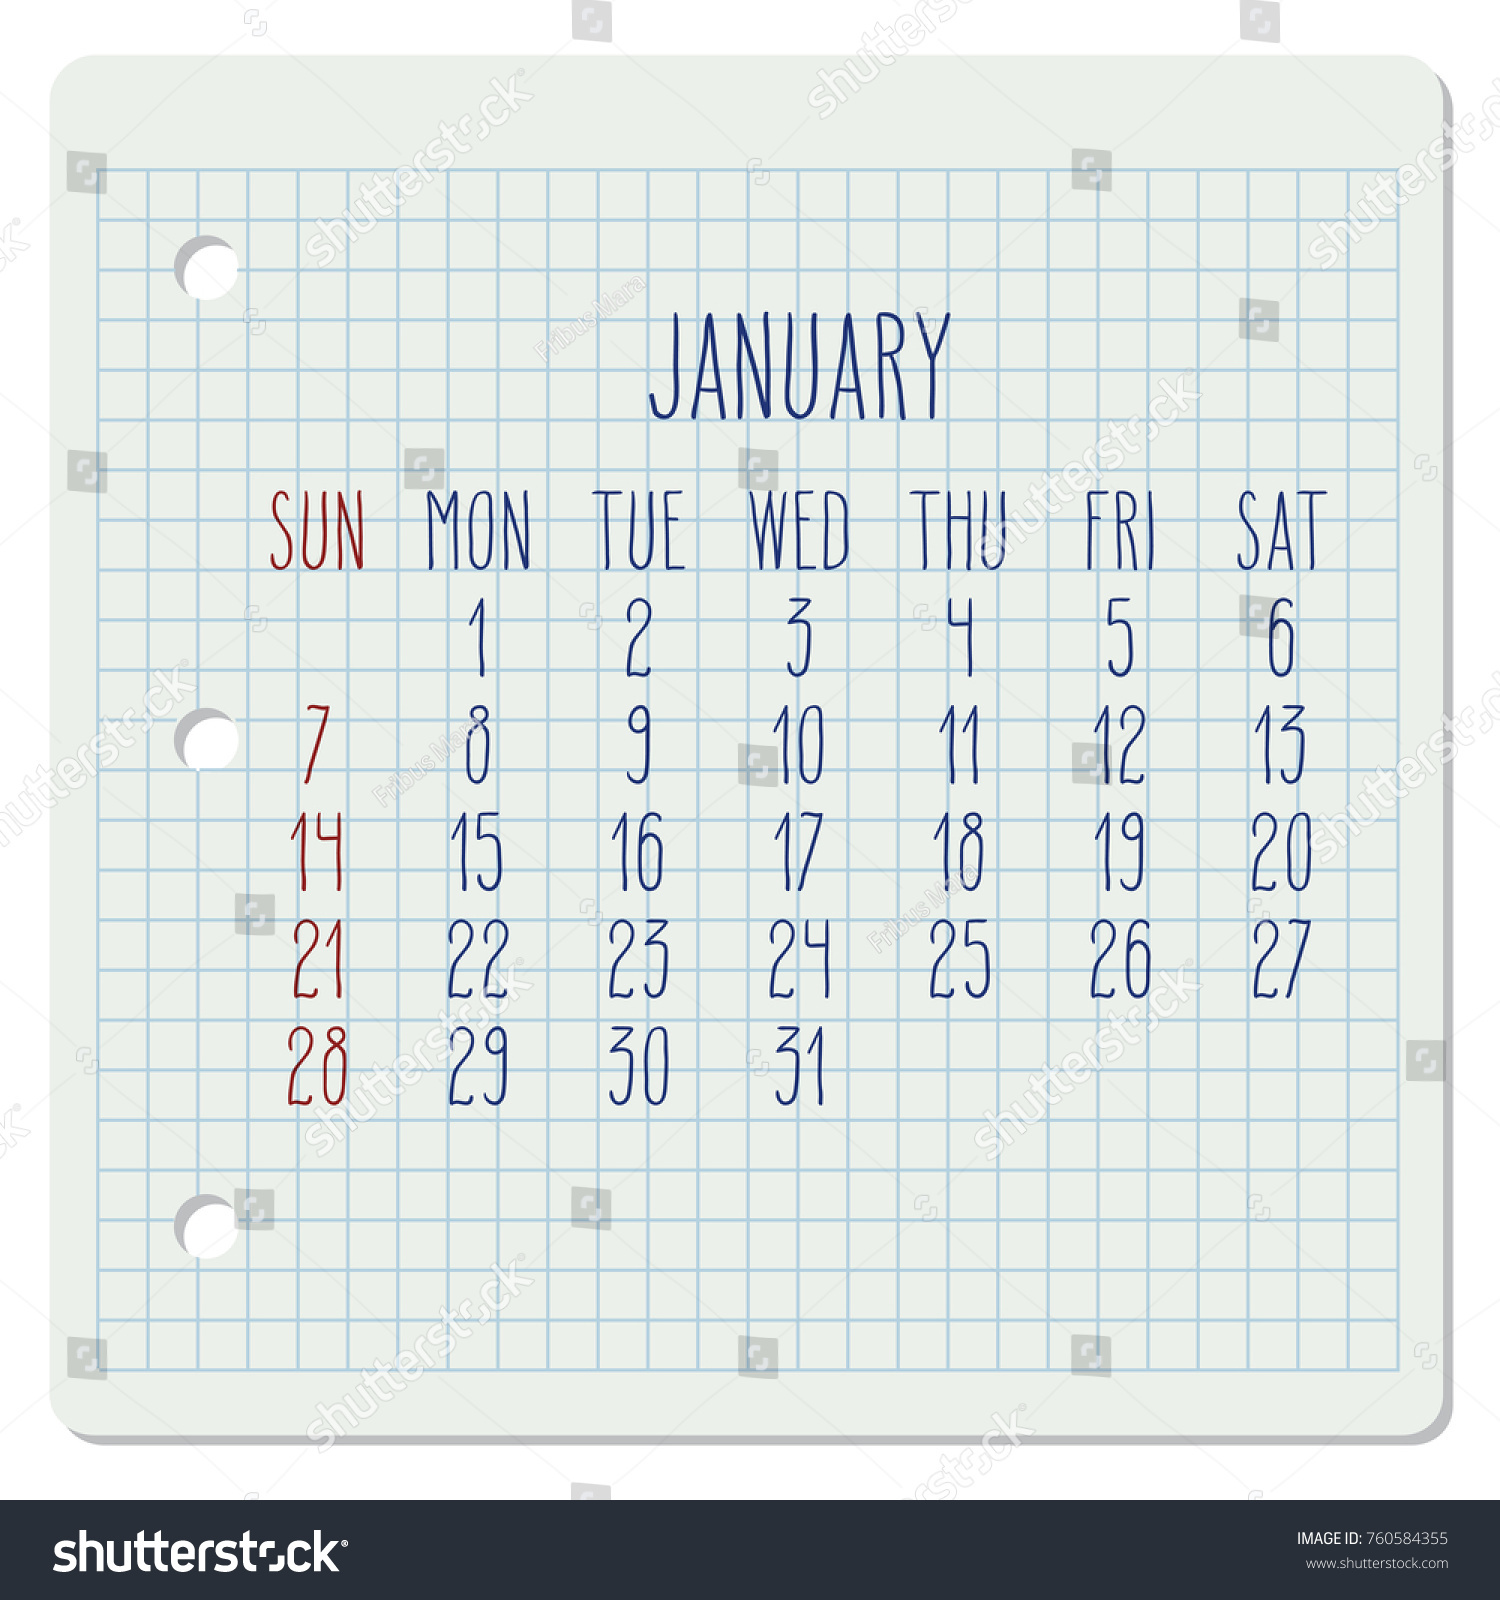 Calendar Typography Examples : January year vector monthly calendar stock vector royalty